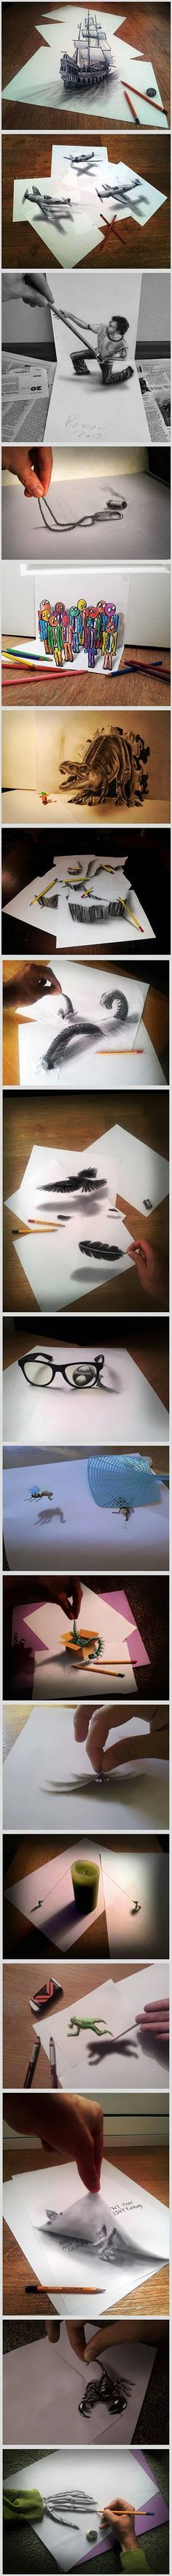 A mostly self-taught artist from the Netherlands now has a whole bunch of new 3D optical illusions. Ramon continues to draw with regular pencils and keeps developing his anamorphic techniques, that make the paintings look 3D. No wonder that every time you see a prop he left by the drawing, you start questioning if this one is actually real!